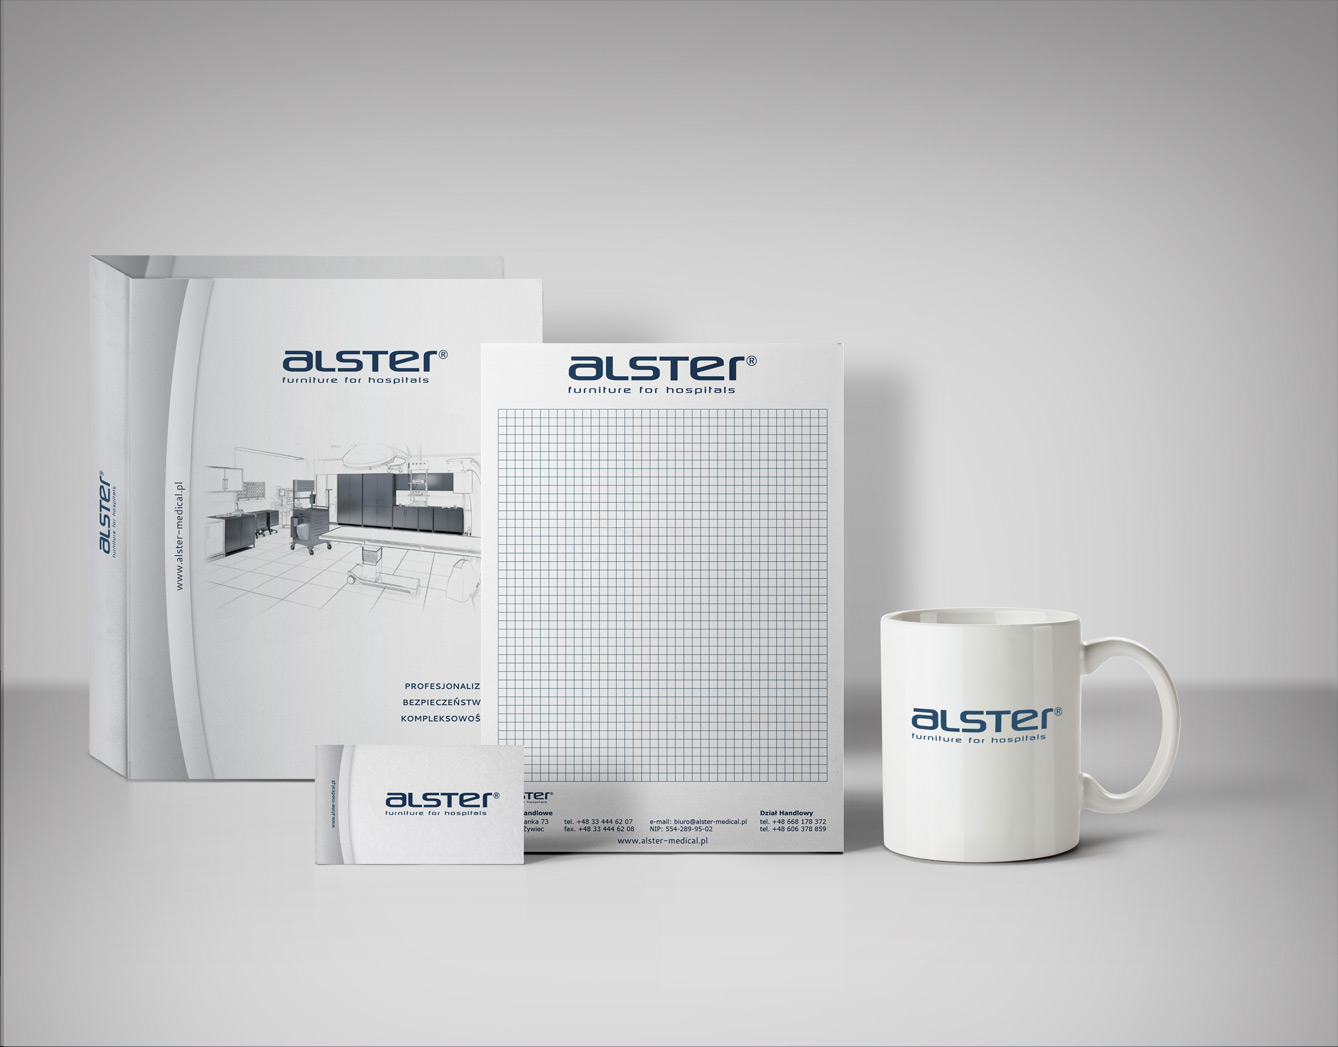 Promotional Materials for Alster Medical